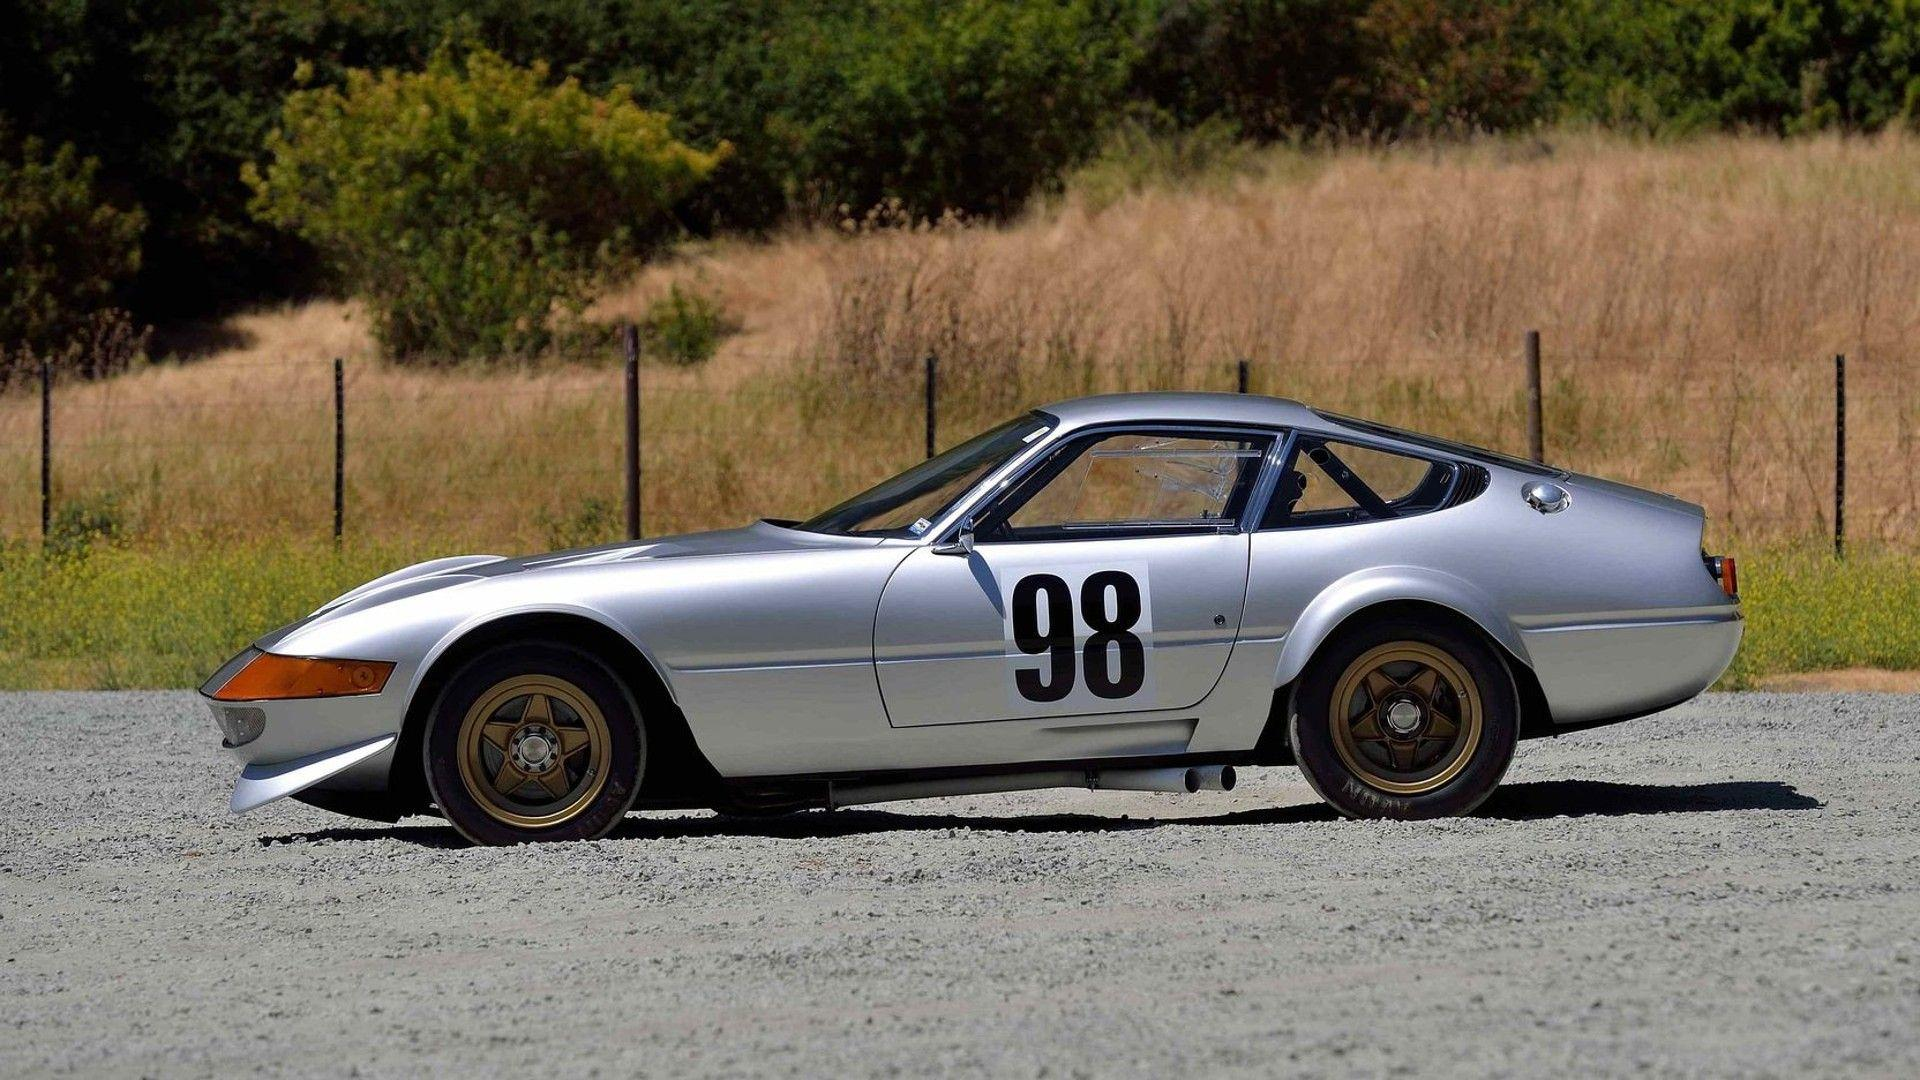 Ferrari 365 GTB4 Daytona Competizione in auction (3)